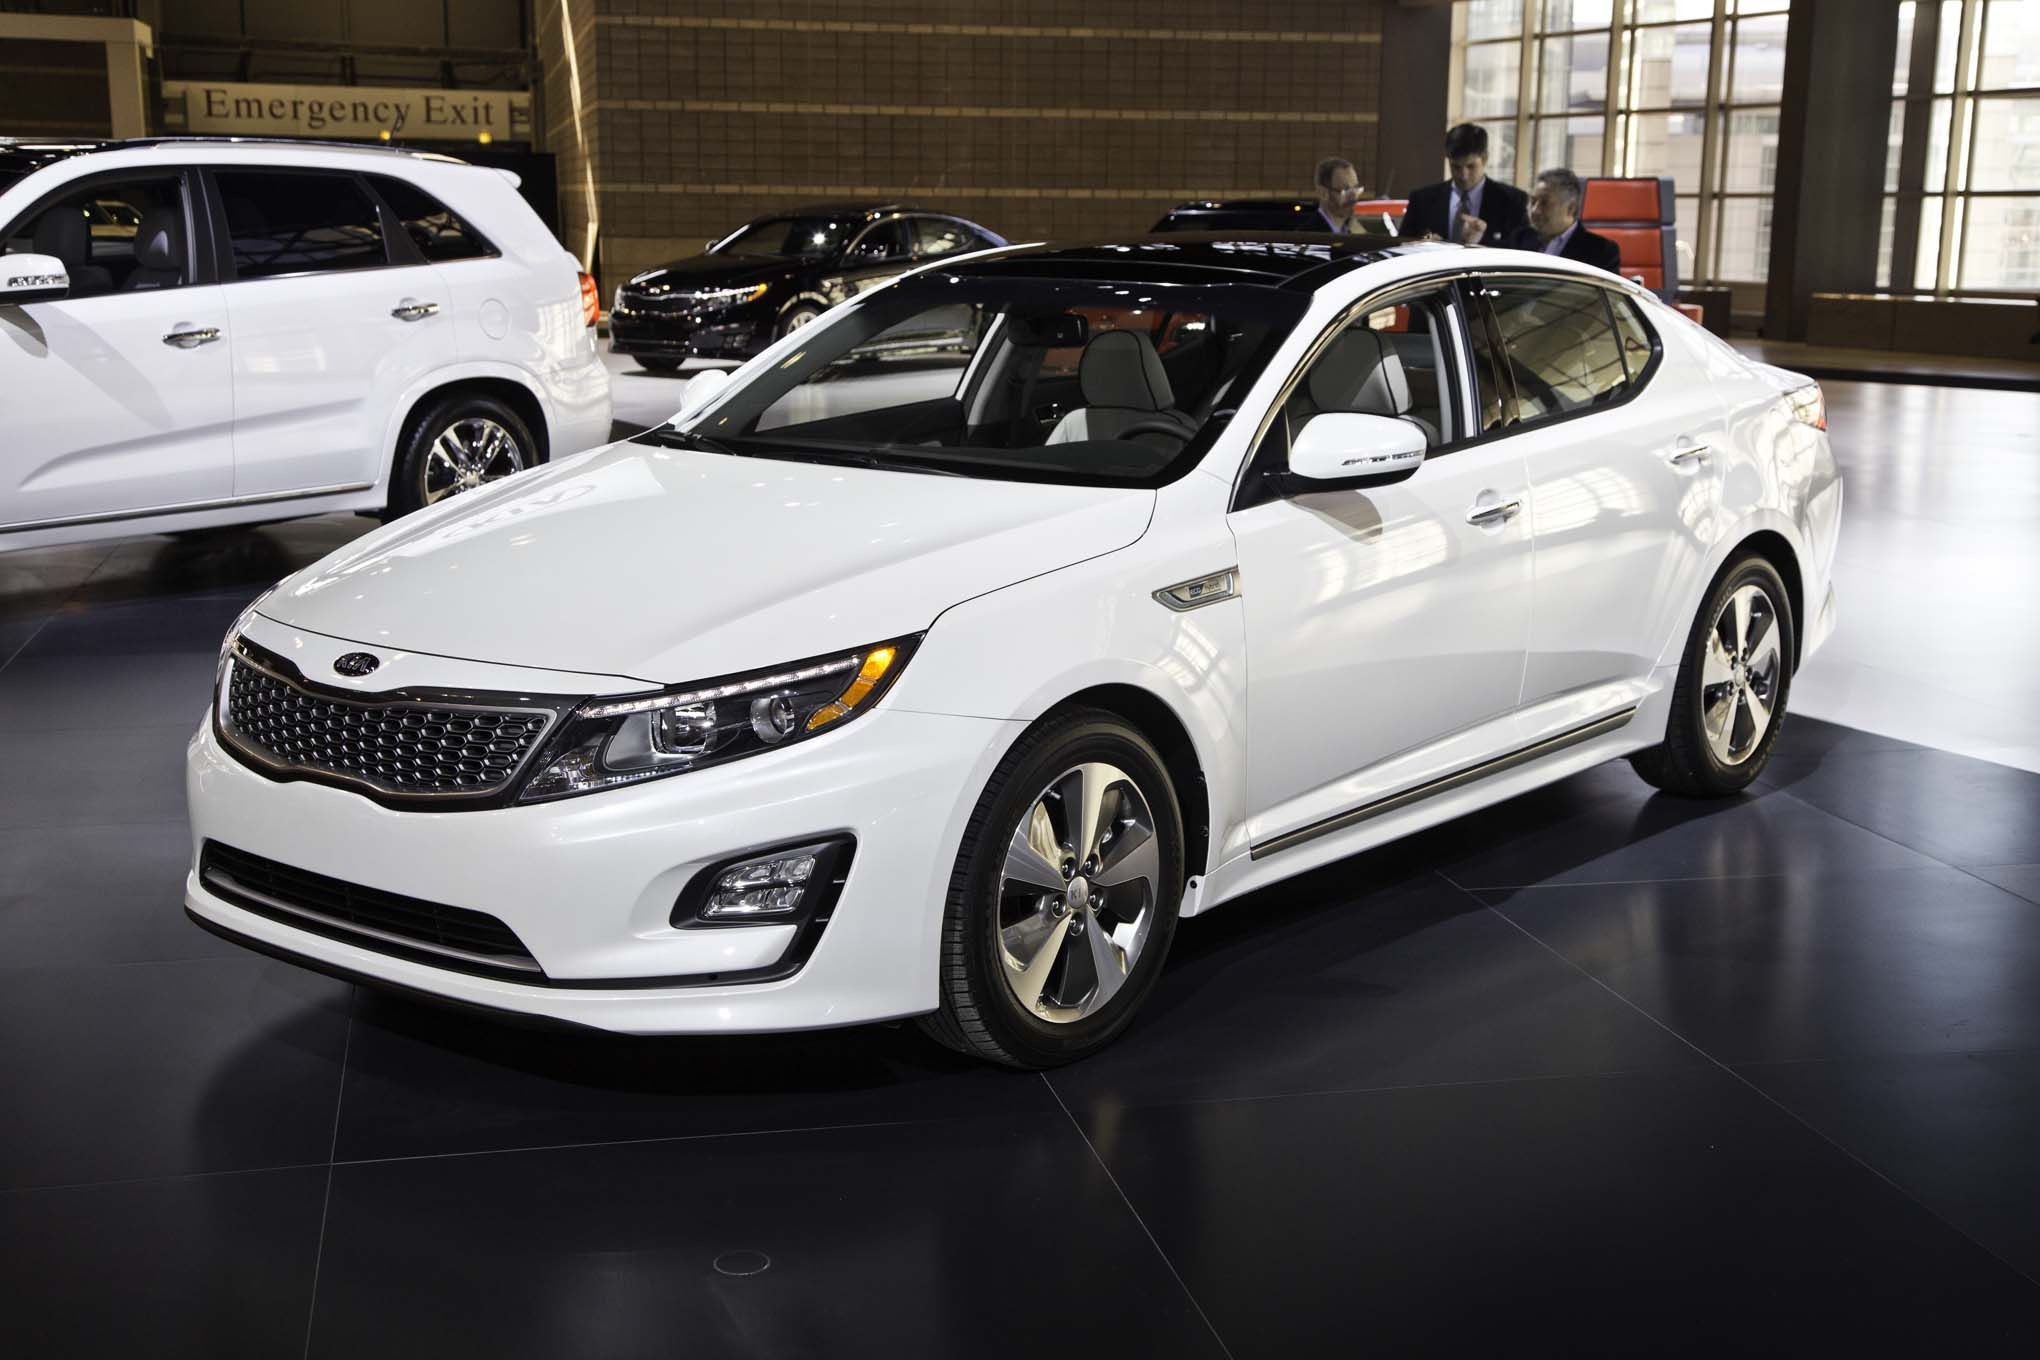 new bend jpg optima near mi in for kia south indiana exterior htm niles sale gallery elkhart hybrid